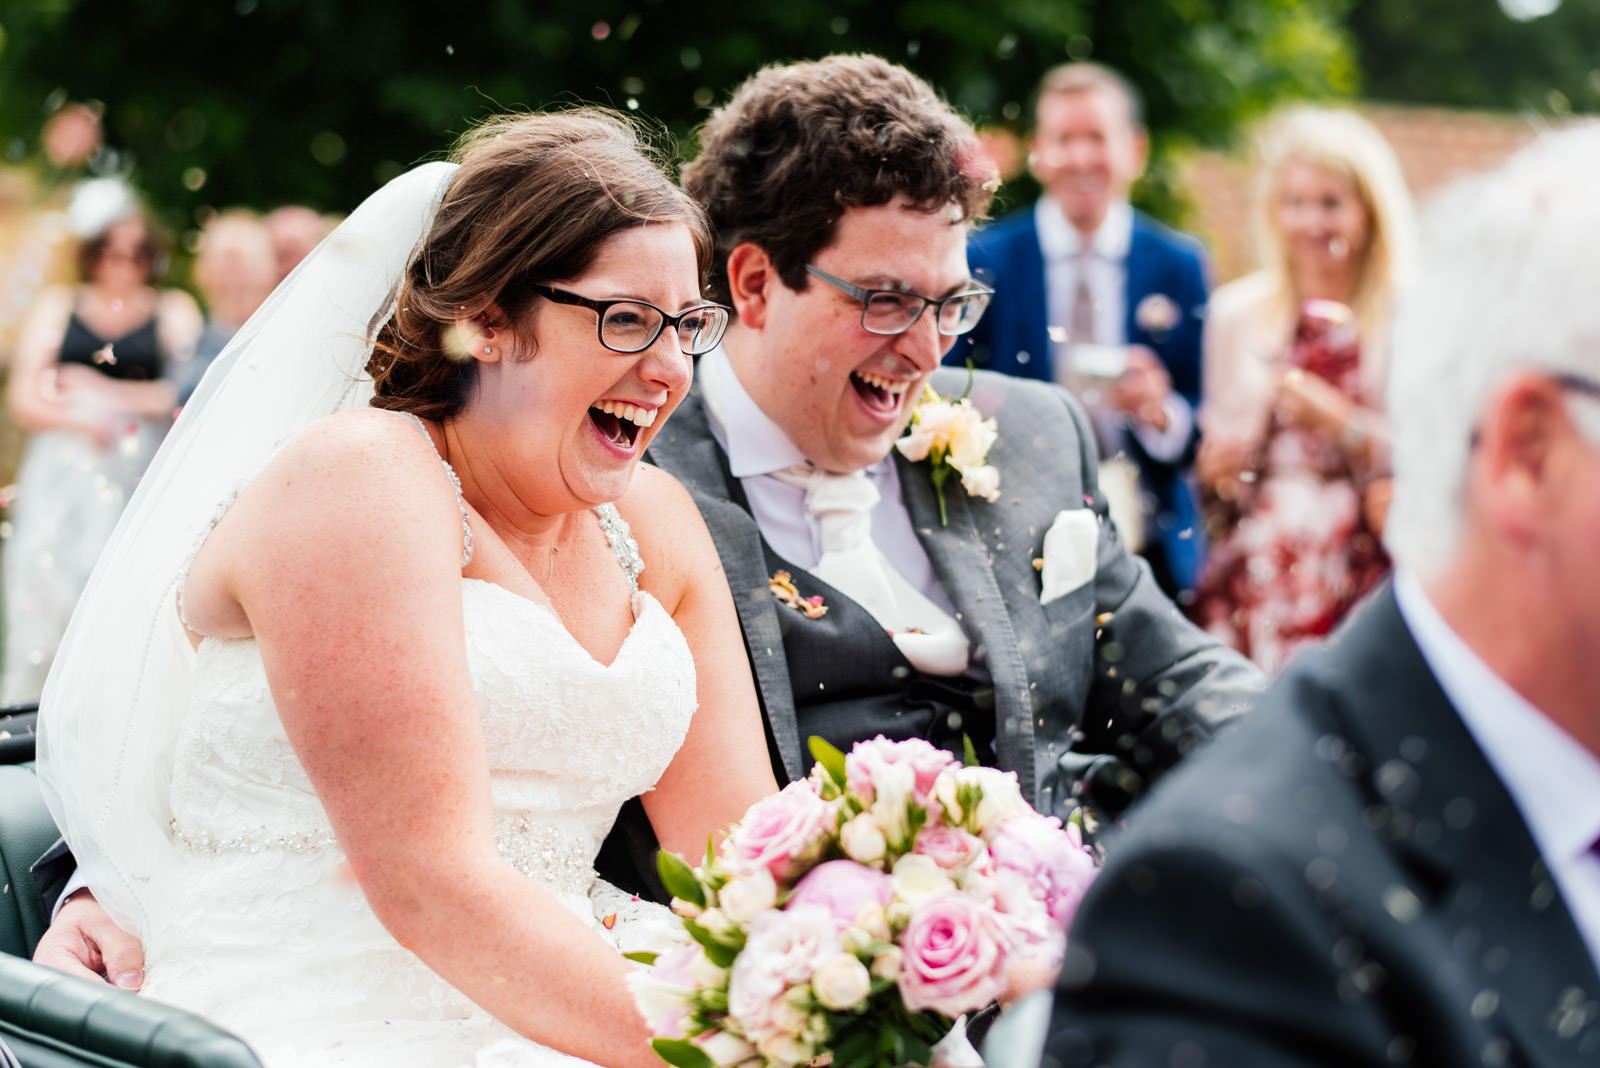 bride and groom arriving at reception venue with guests throwing confetti